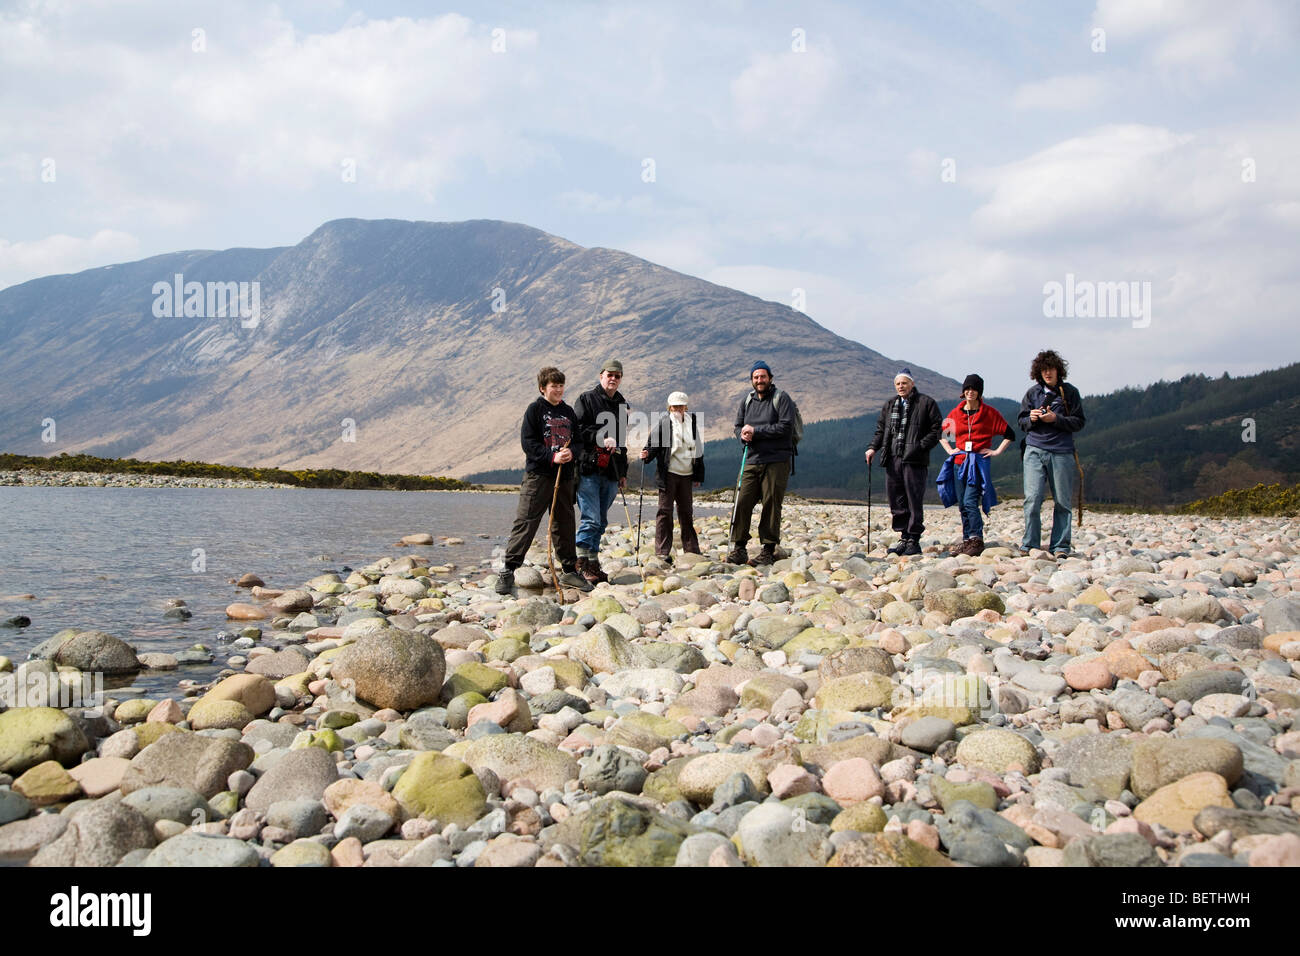 Family Trek - Stock Image